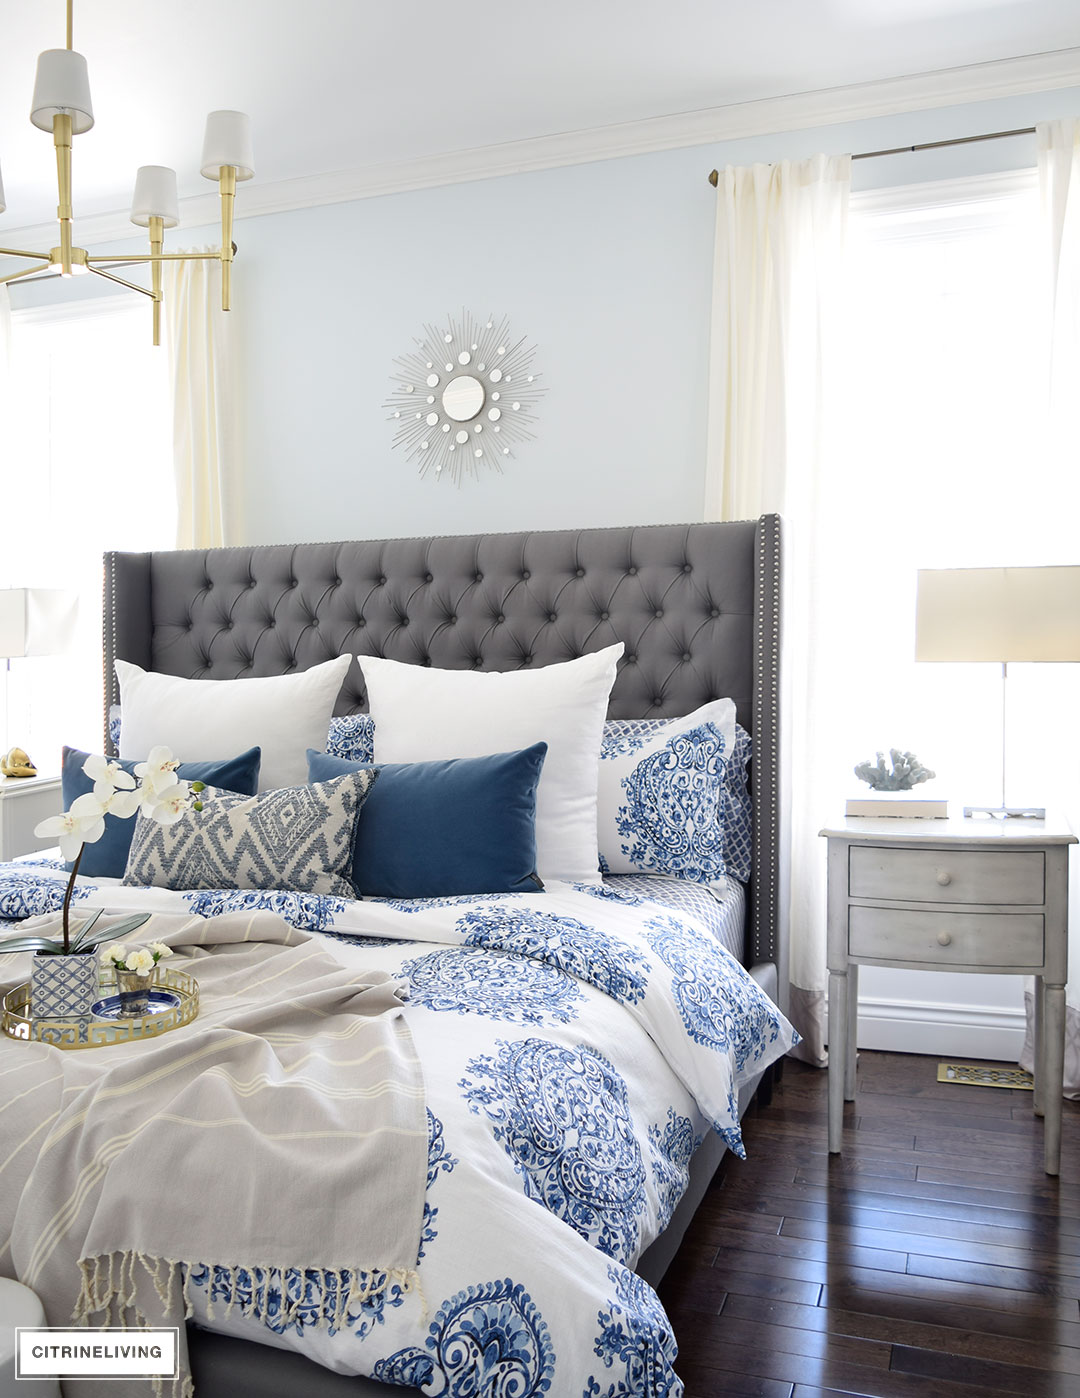 Citrineliving spring in full swing home tour 2017 for Blue white and silver bedroom ideas